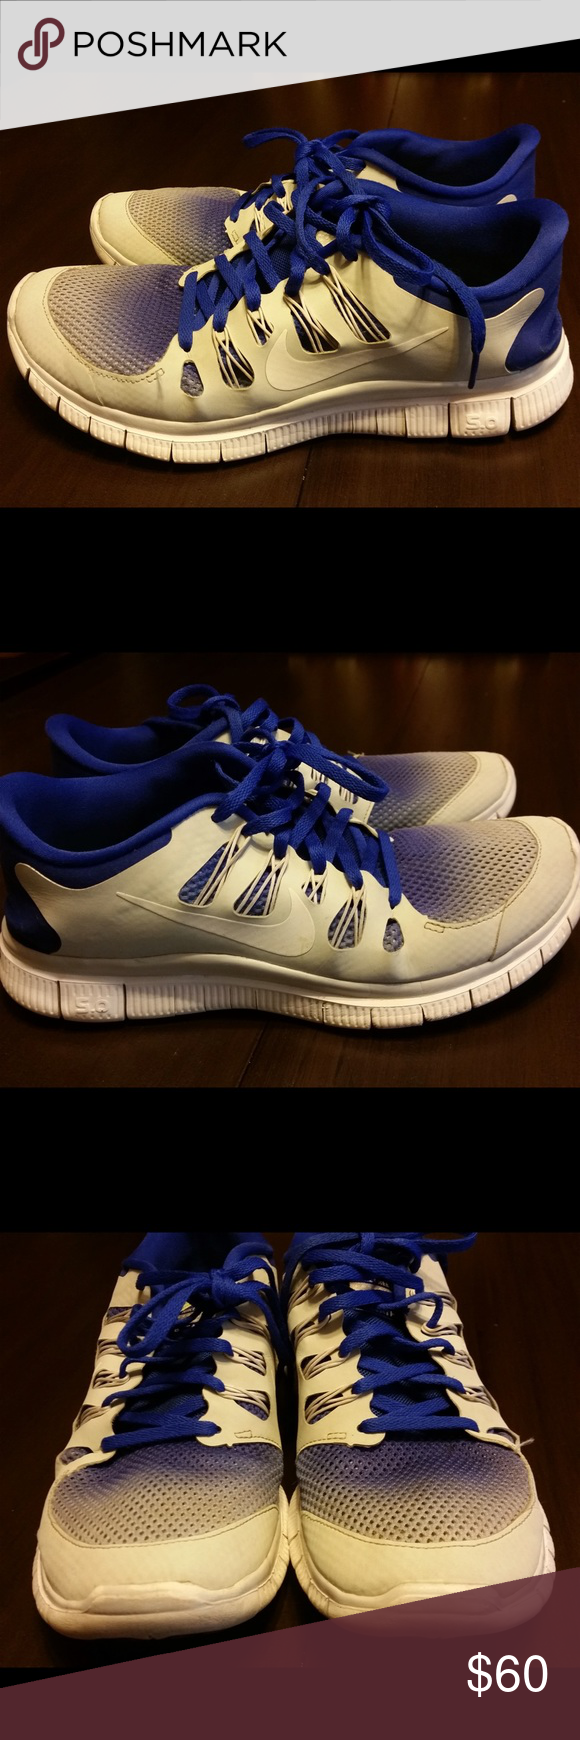 Final price. White and blue ombré nike shoes Final Price!! Blue and white ombré Nike running shoes! Size 8.5 men's 9.5 women's. Not worn a lot only some wear, still in good condition. Love these shoes but just a little big for me! Nike Shoes Athletic Shoes